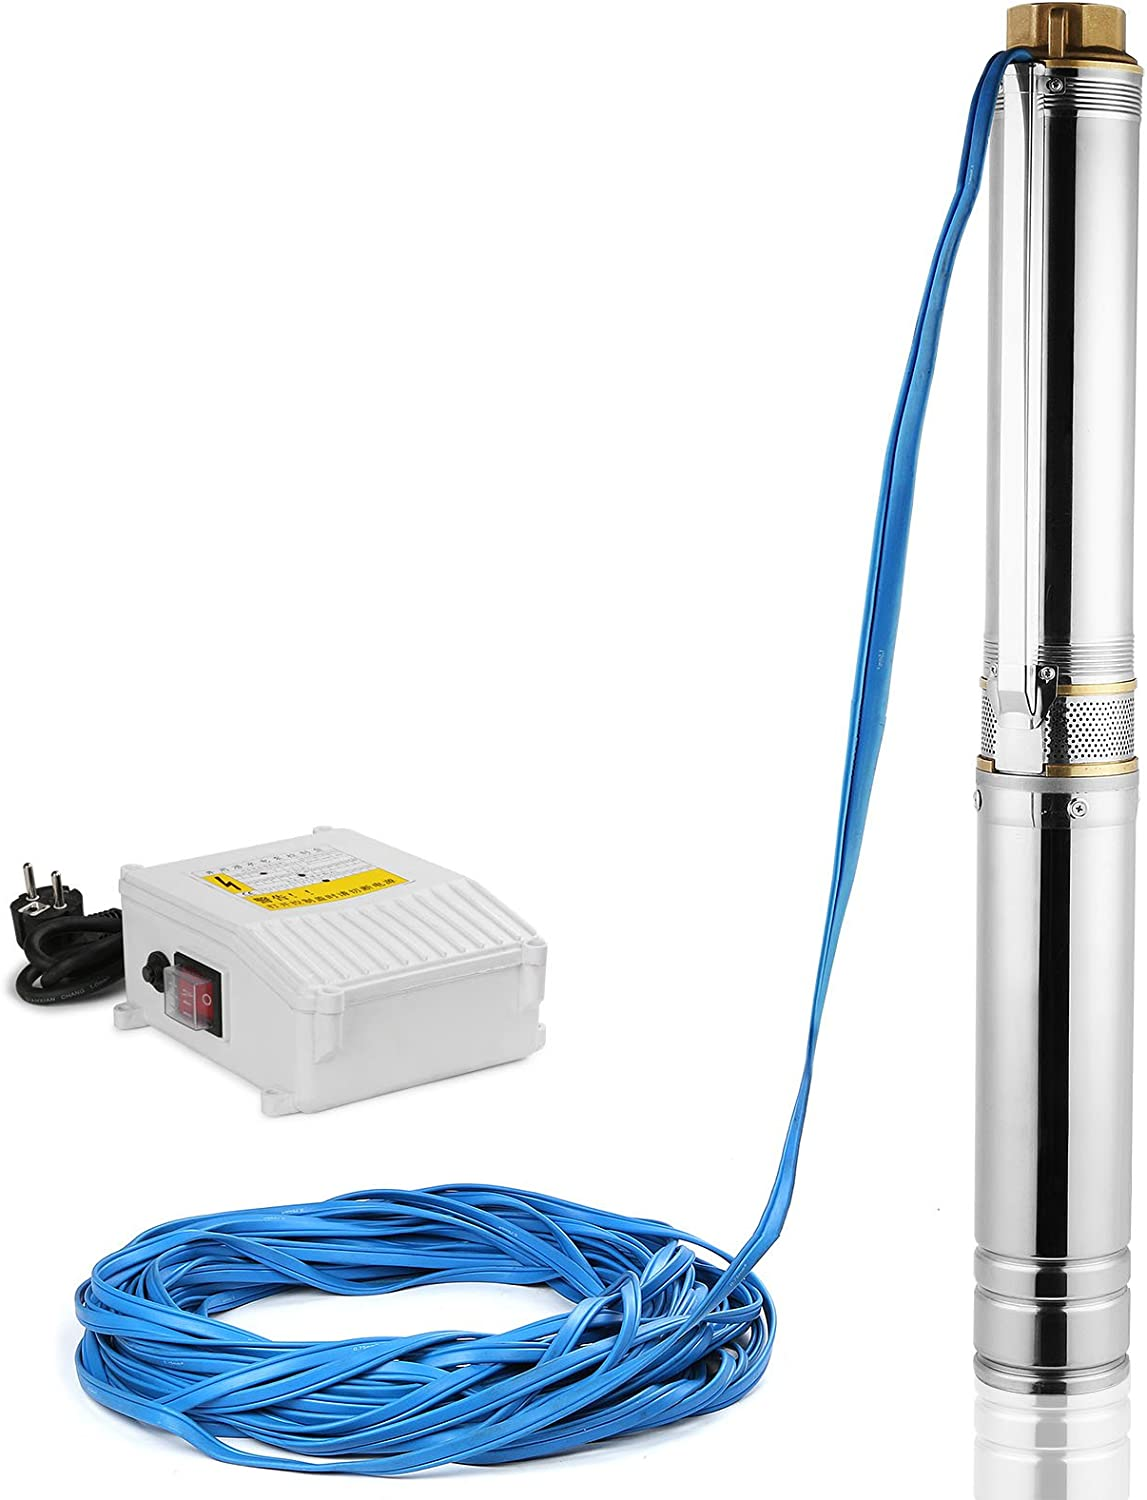 12VDC Solar Hot Water Pumps FDA RoHS With three-phase ECM brushless DC motor REACH,CE Can handle temperatures up to 230F and Pressures up to 145PSI ISO9001 certificated AC//DC Adapter